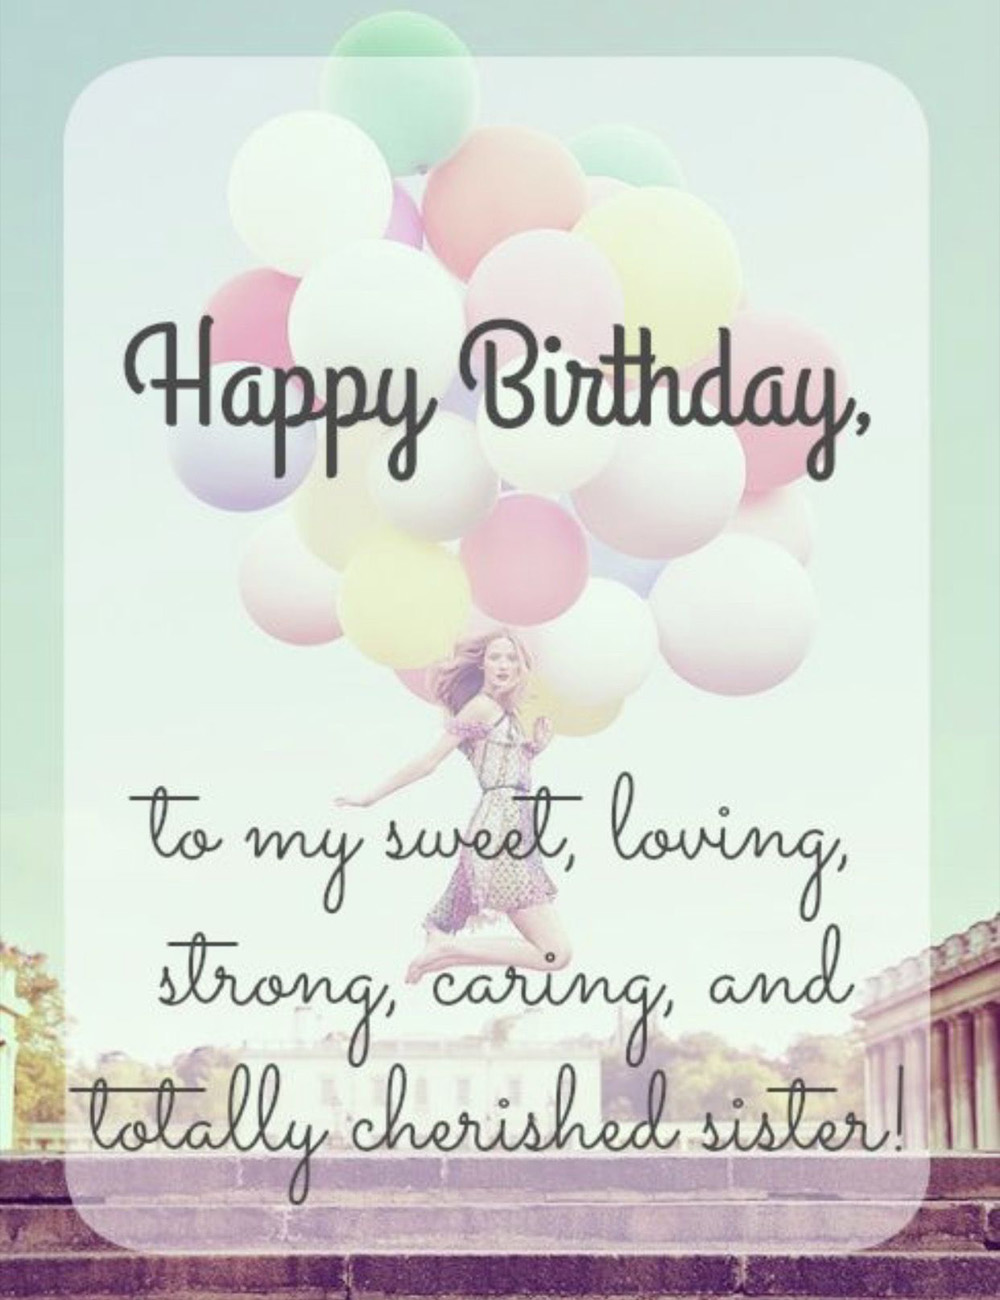 170 Birthday Wishes For Sister To Make Her Happy Some Events Happy Birthday Sister Quotes Happy Birthday Sister Messages Sister Birthday Quotes